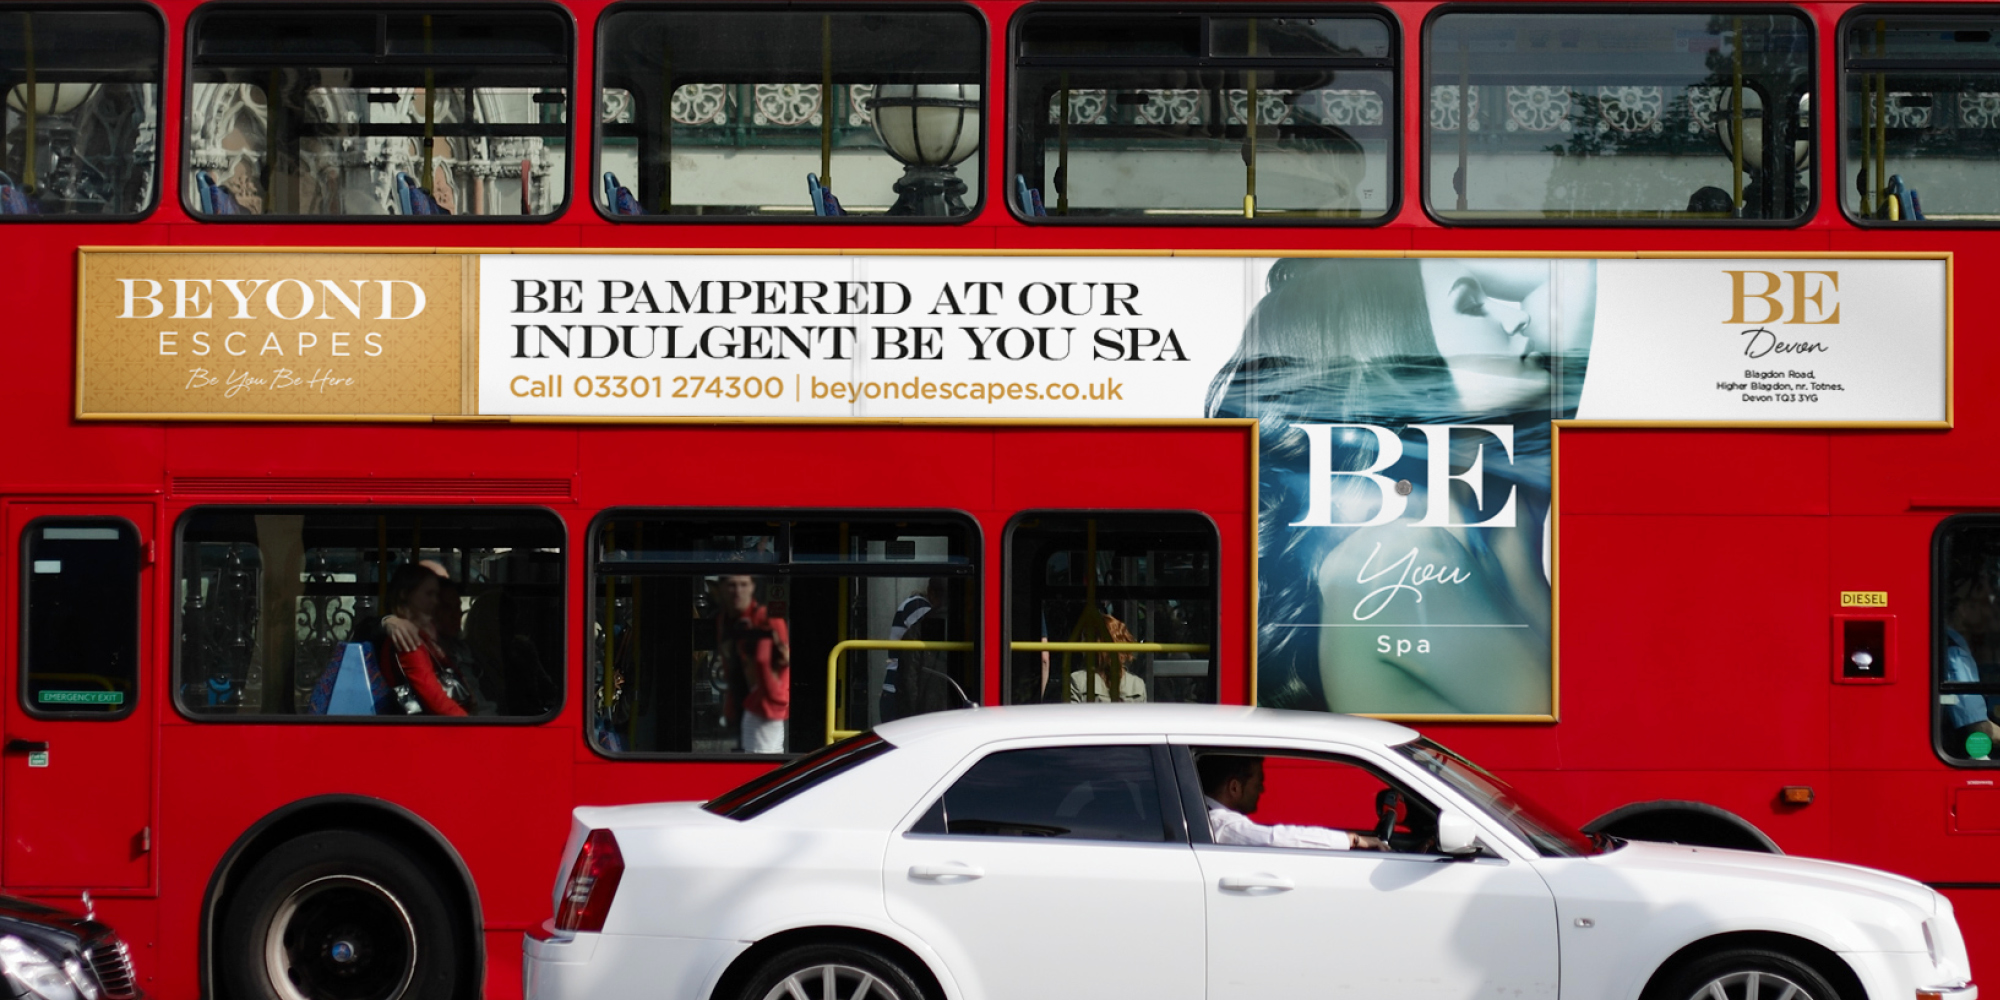 Be You Spa - Bus Side